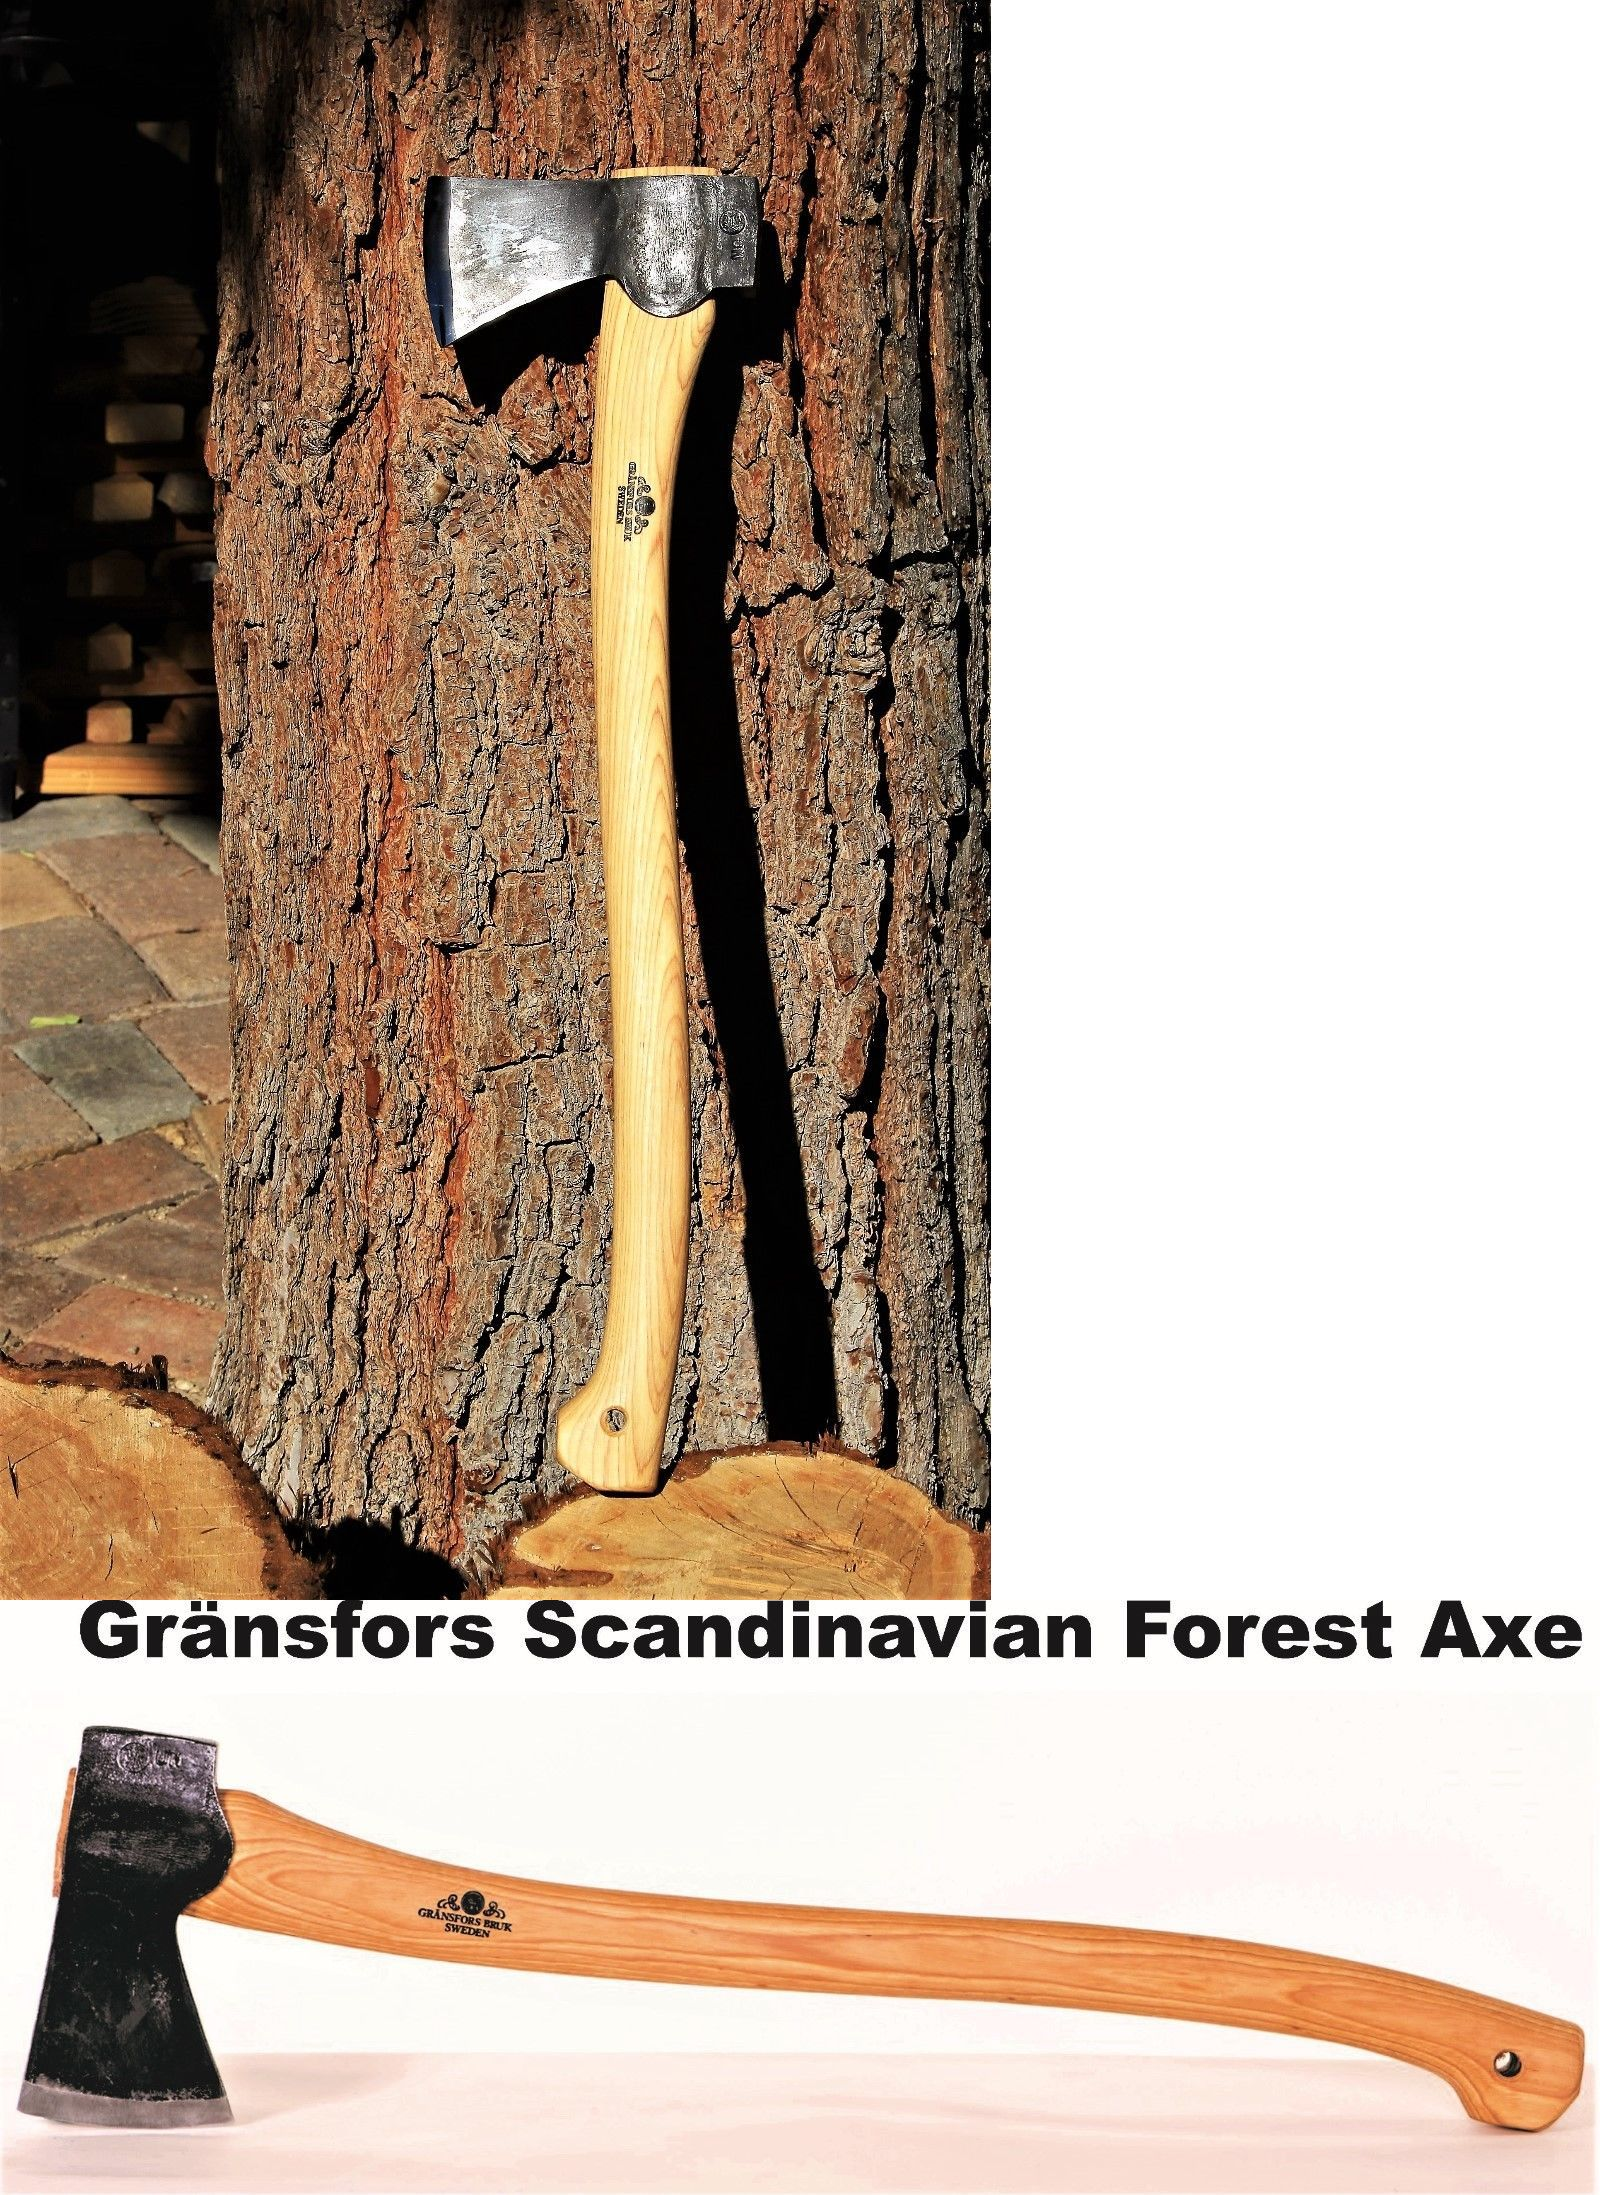 Camping Hatchets And Axes 75234 Gransfors Bruk Scandinavian Forest Axe 430 Buy It Now Only 178 5